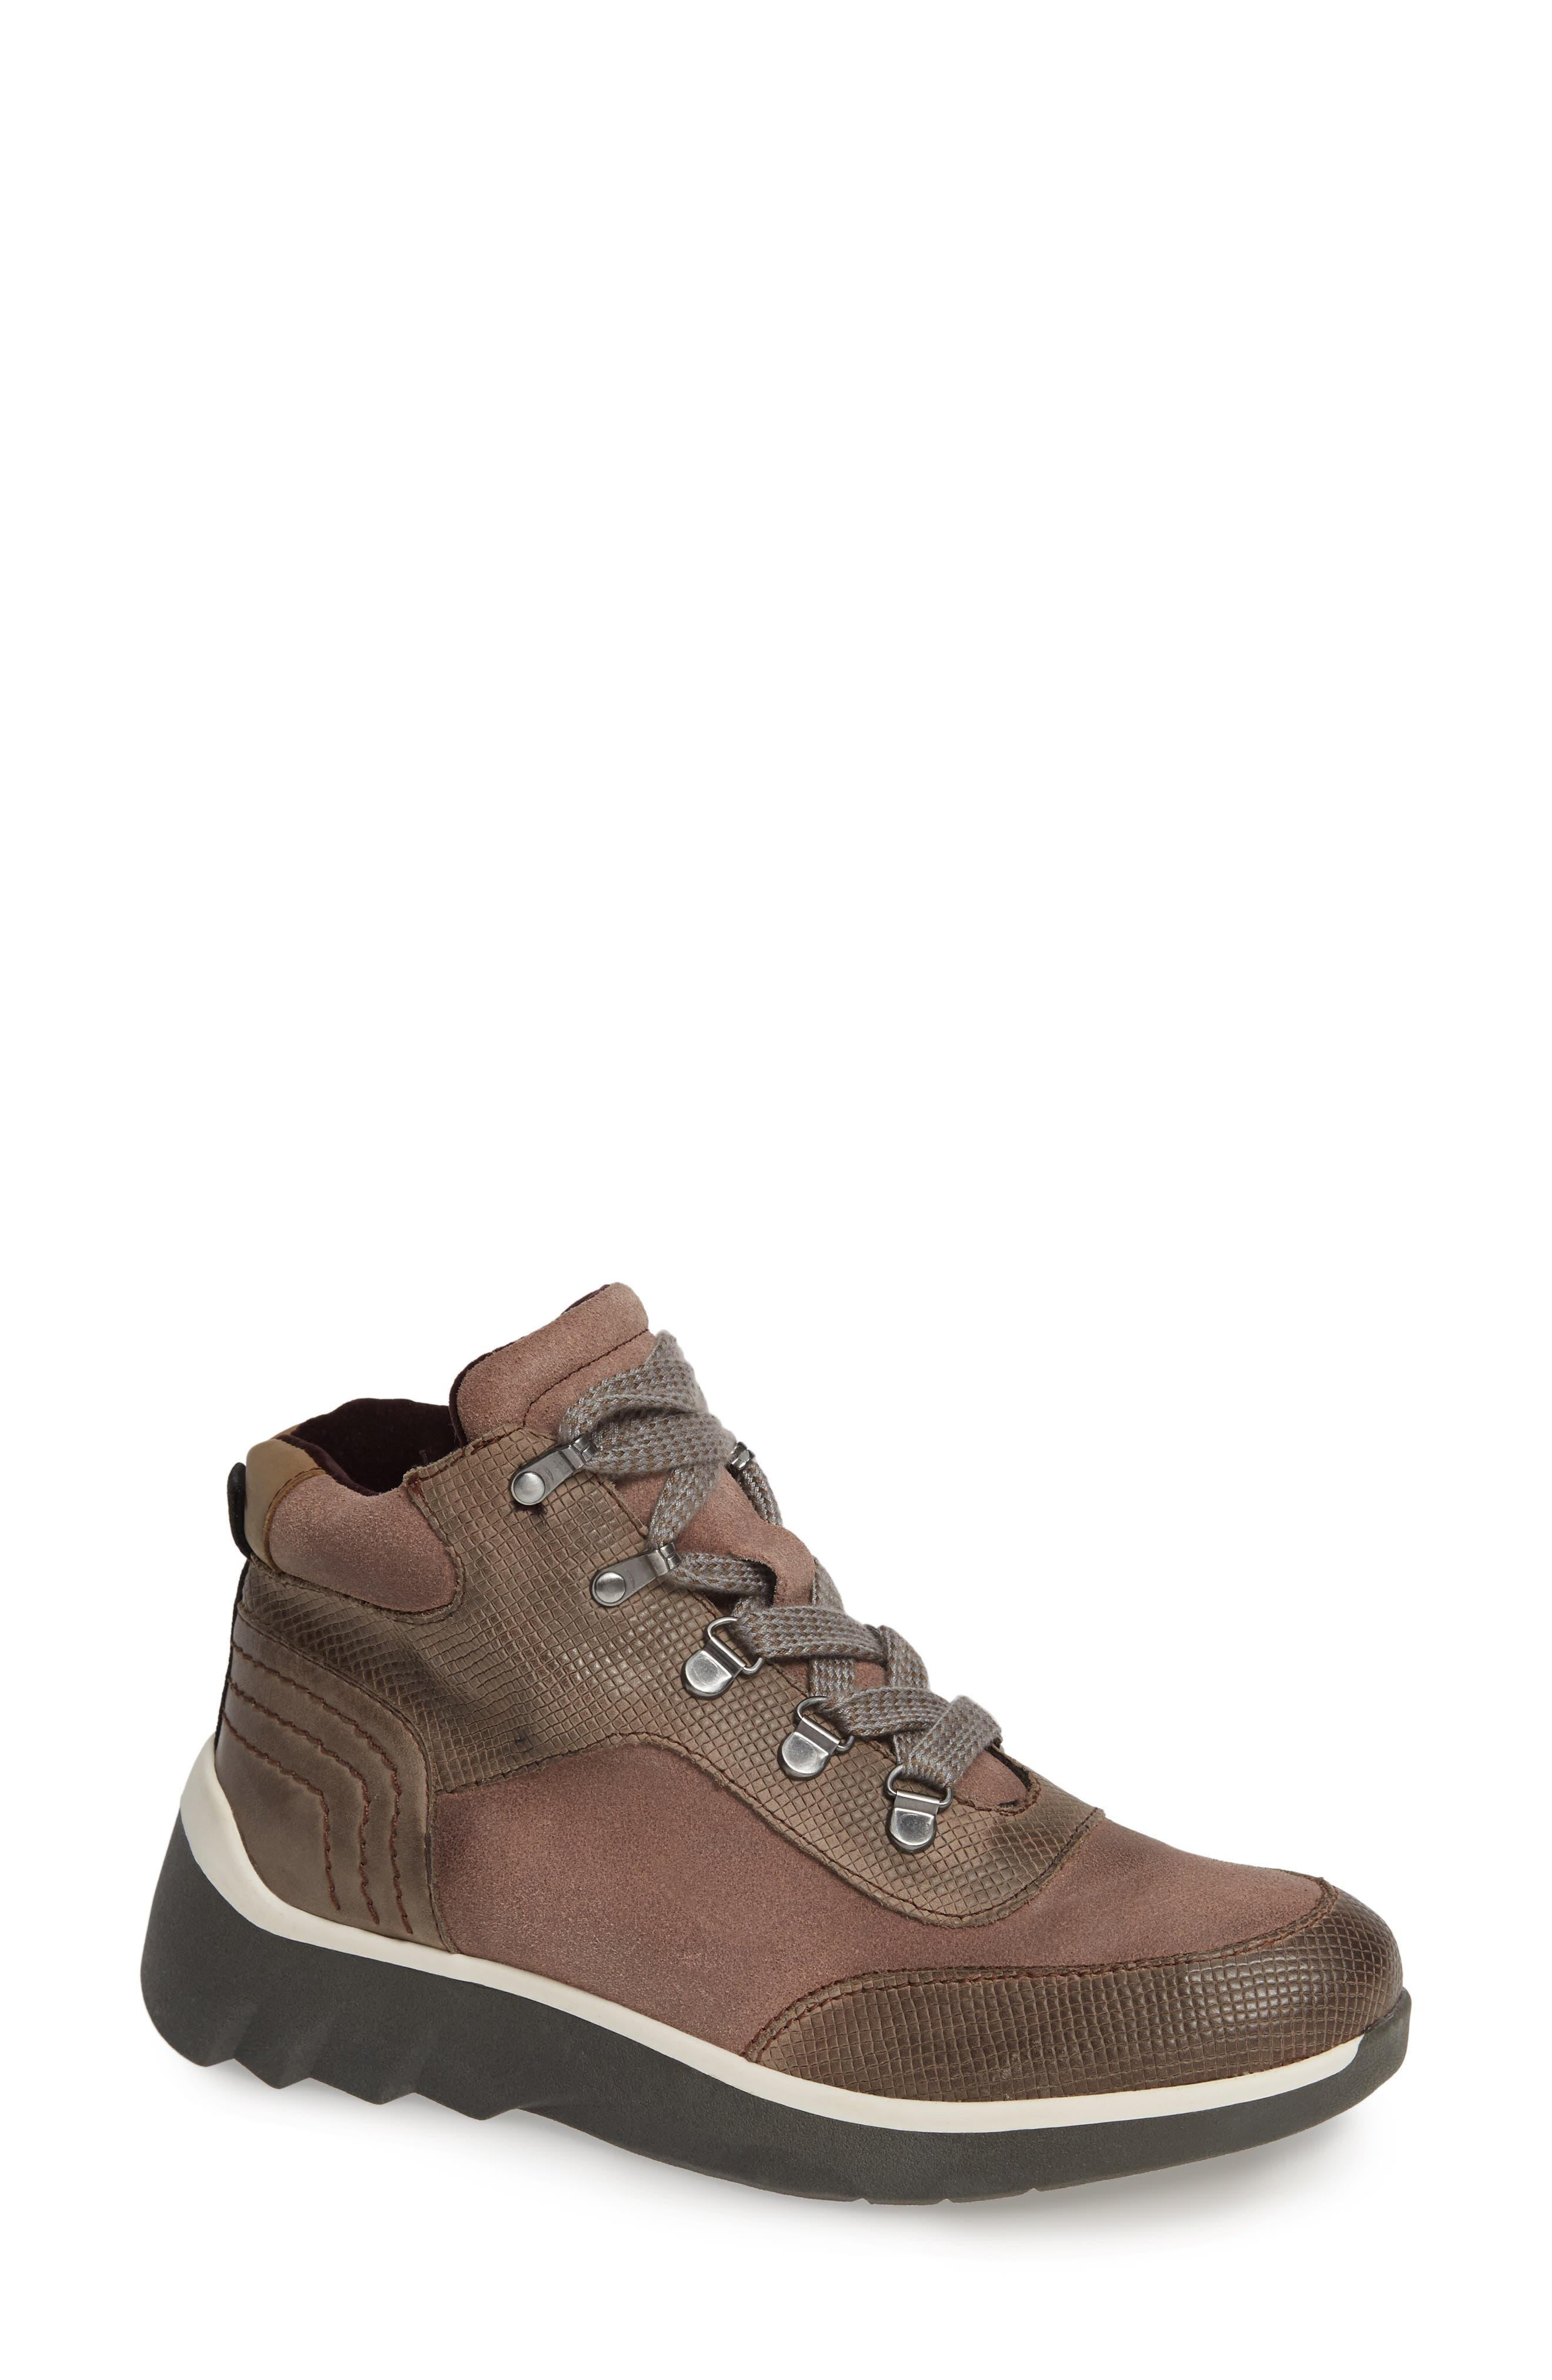 Commuter Sneaker,                             Main thumbnail 1, color,                             CINDER LEATHER